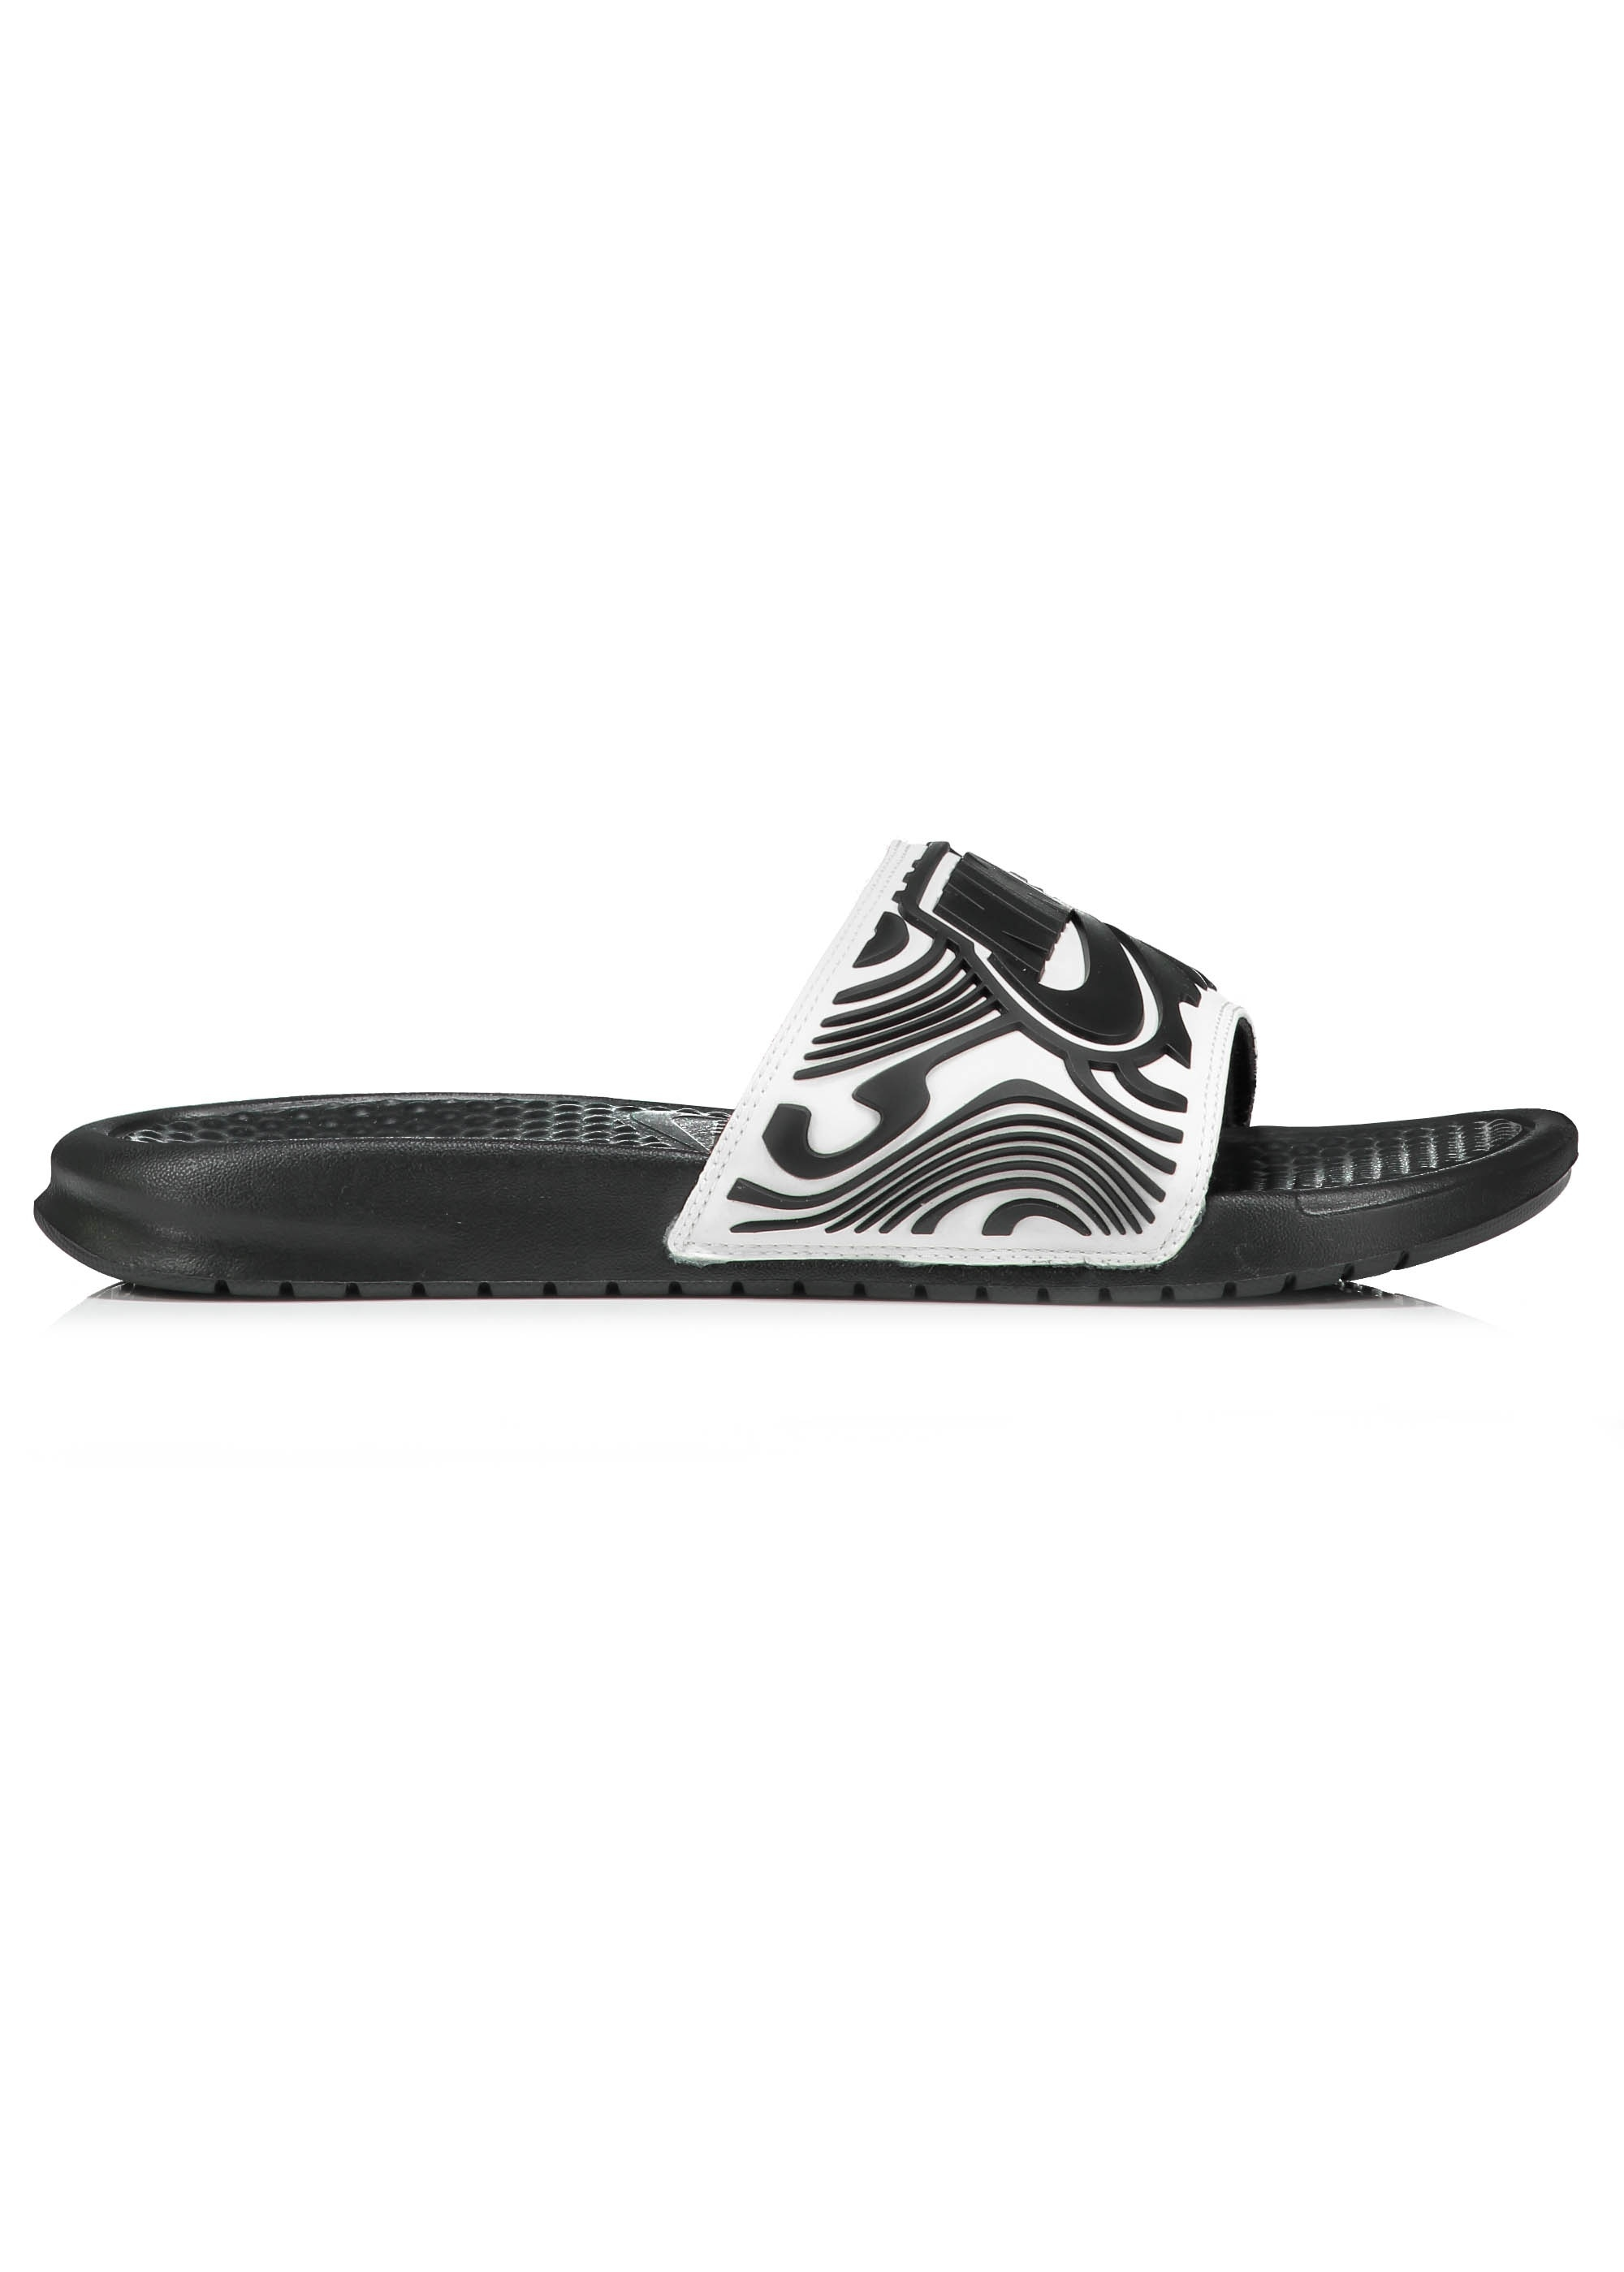 premium selection 7b130 248b8 Benassi JDI SE - White   Black